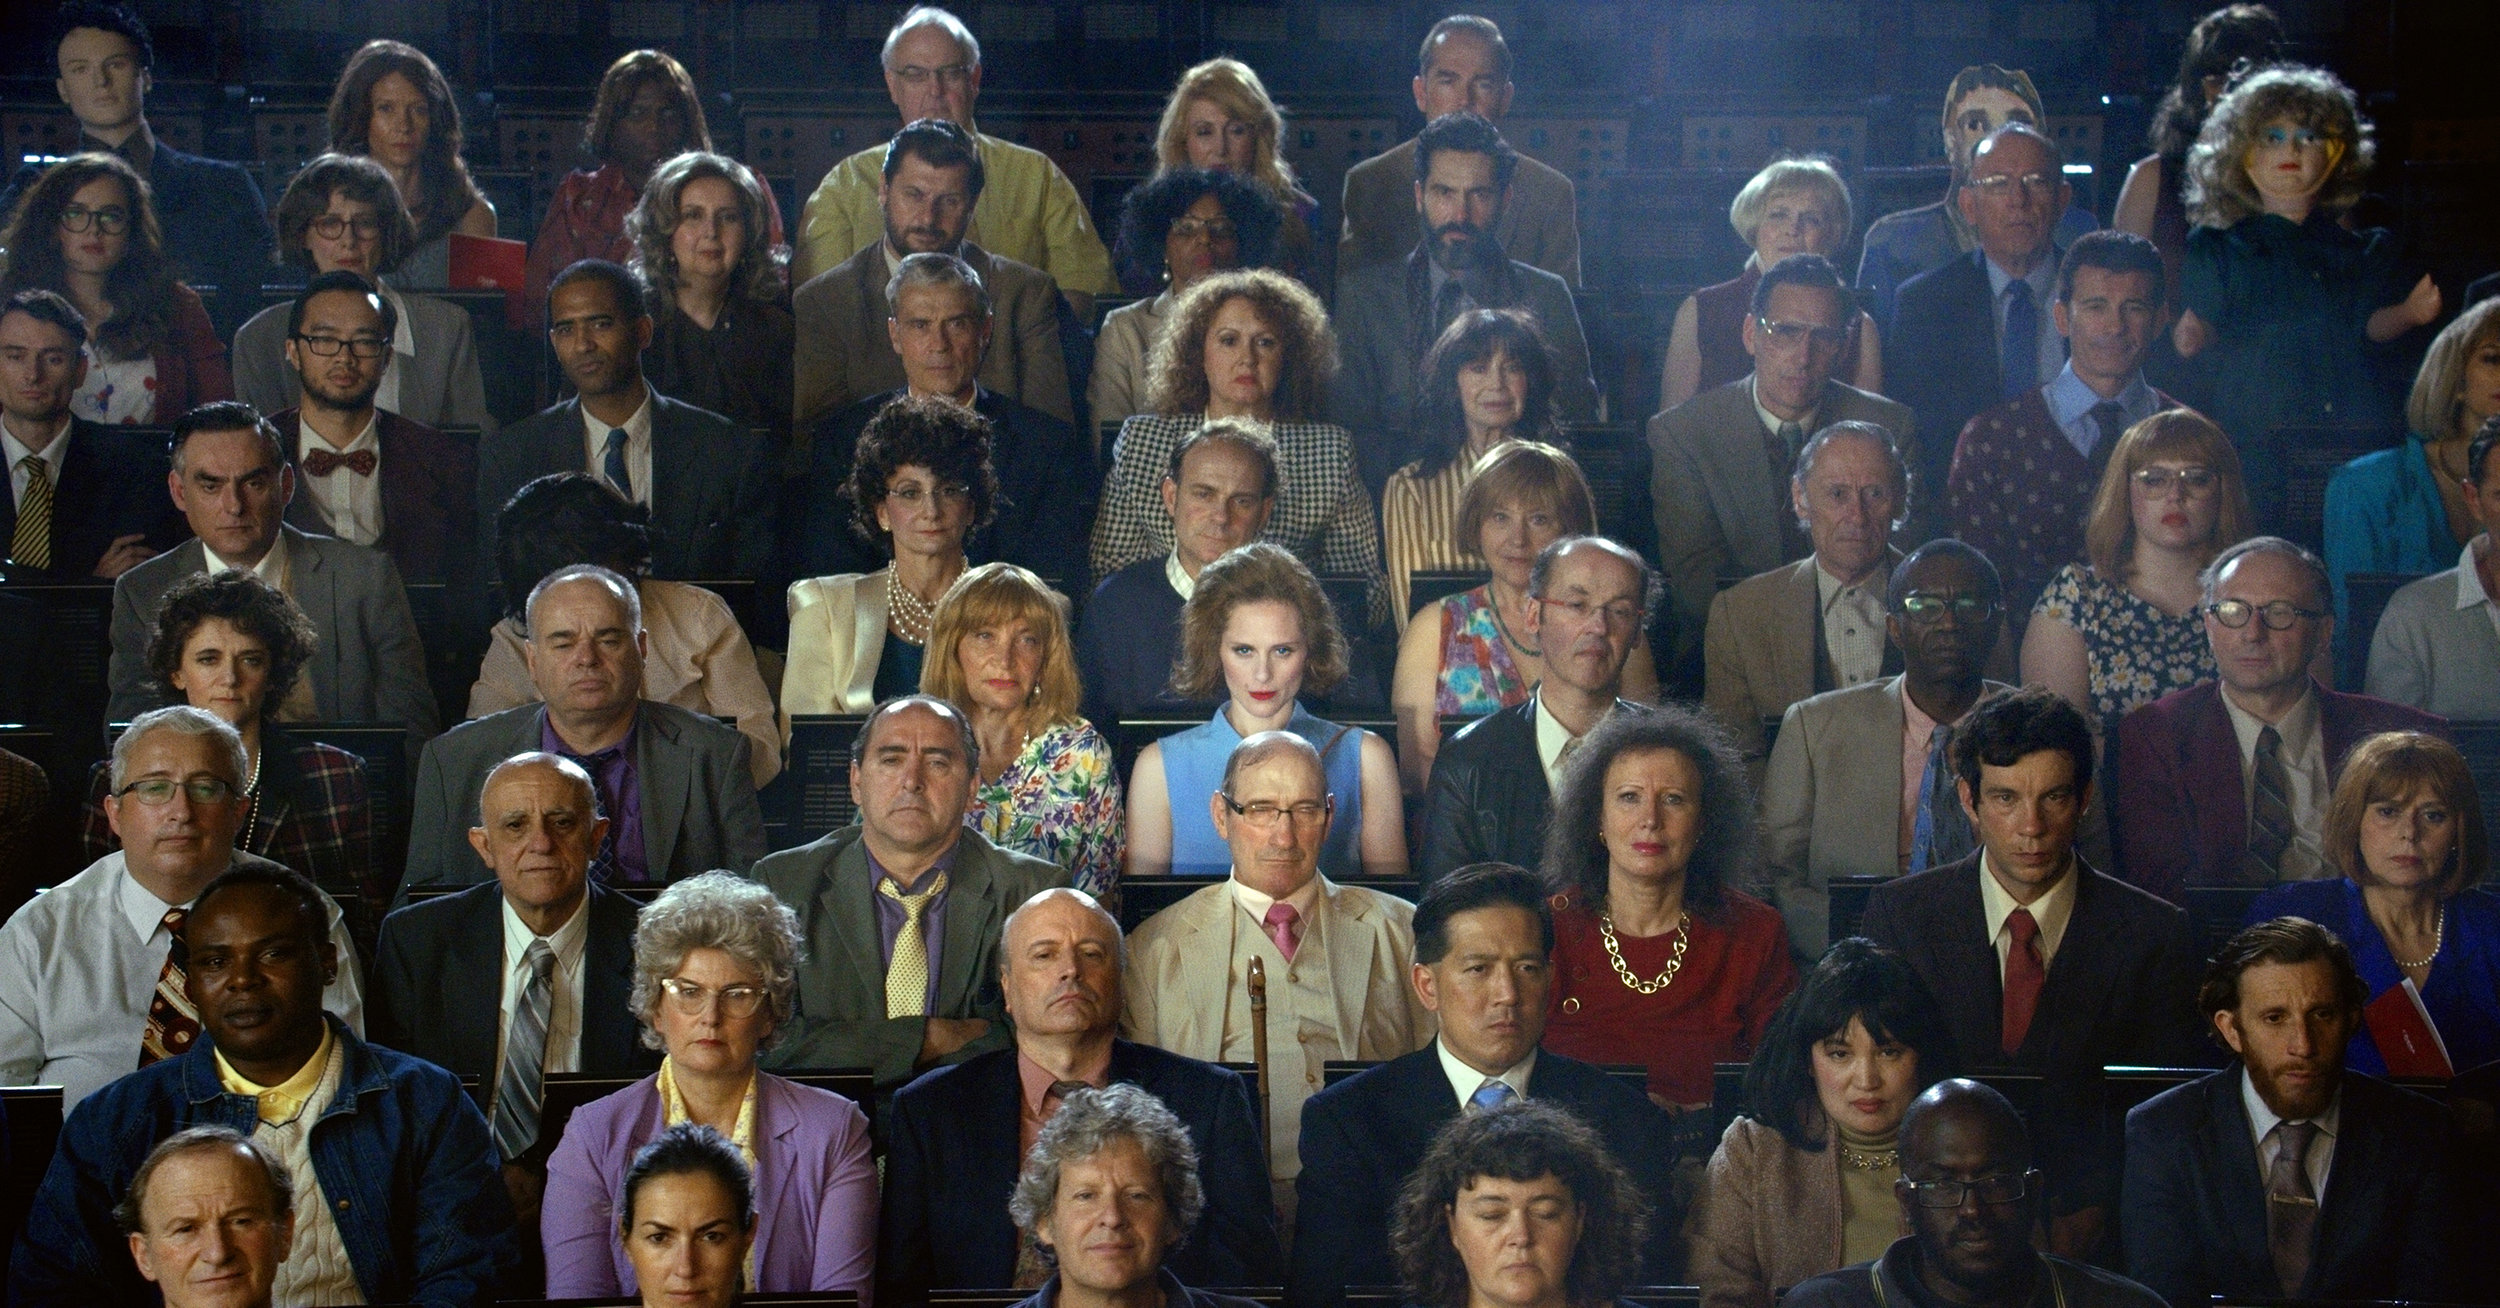 ALEX PRAGER Orchestra East, Section B, 2016 archival pigment print 59 x 89.8 inches 149.9 x 228.1 cm Courtesy the artist and Lehmann Maupin, New York and Hong Kong